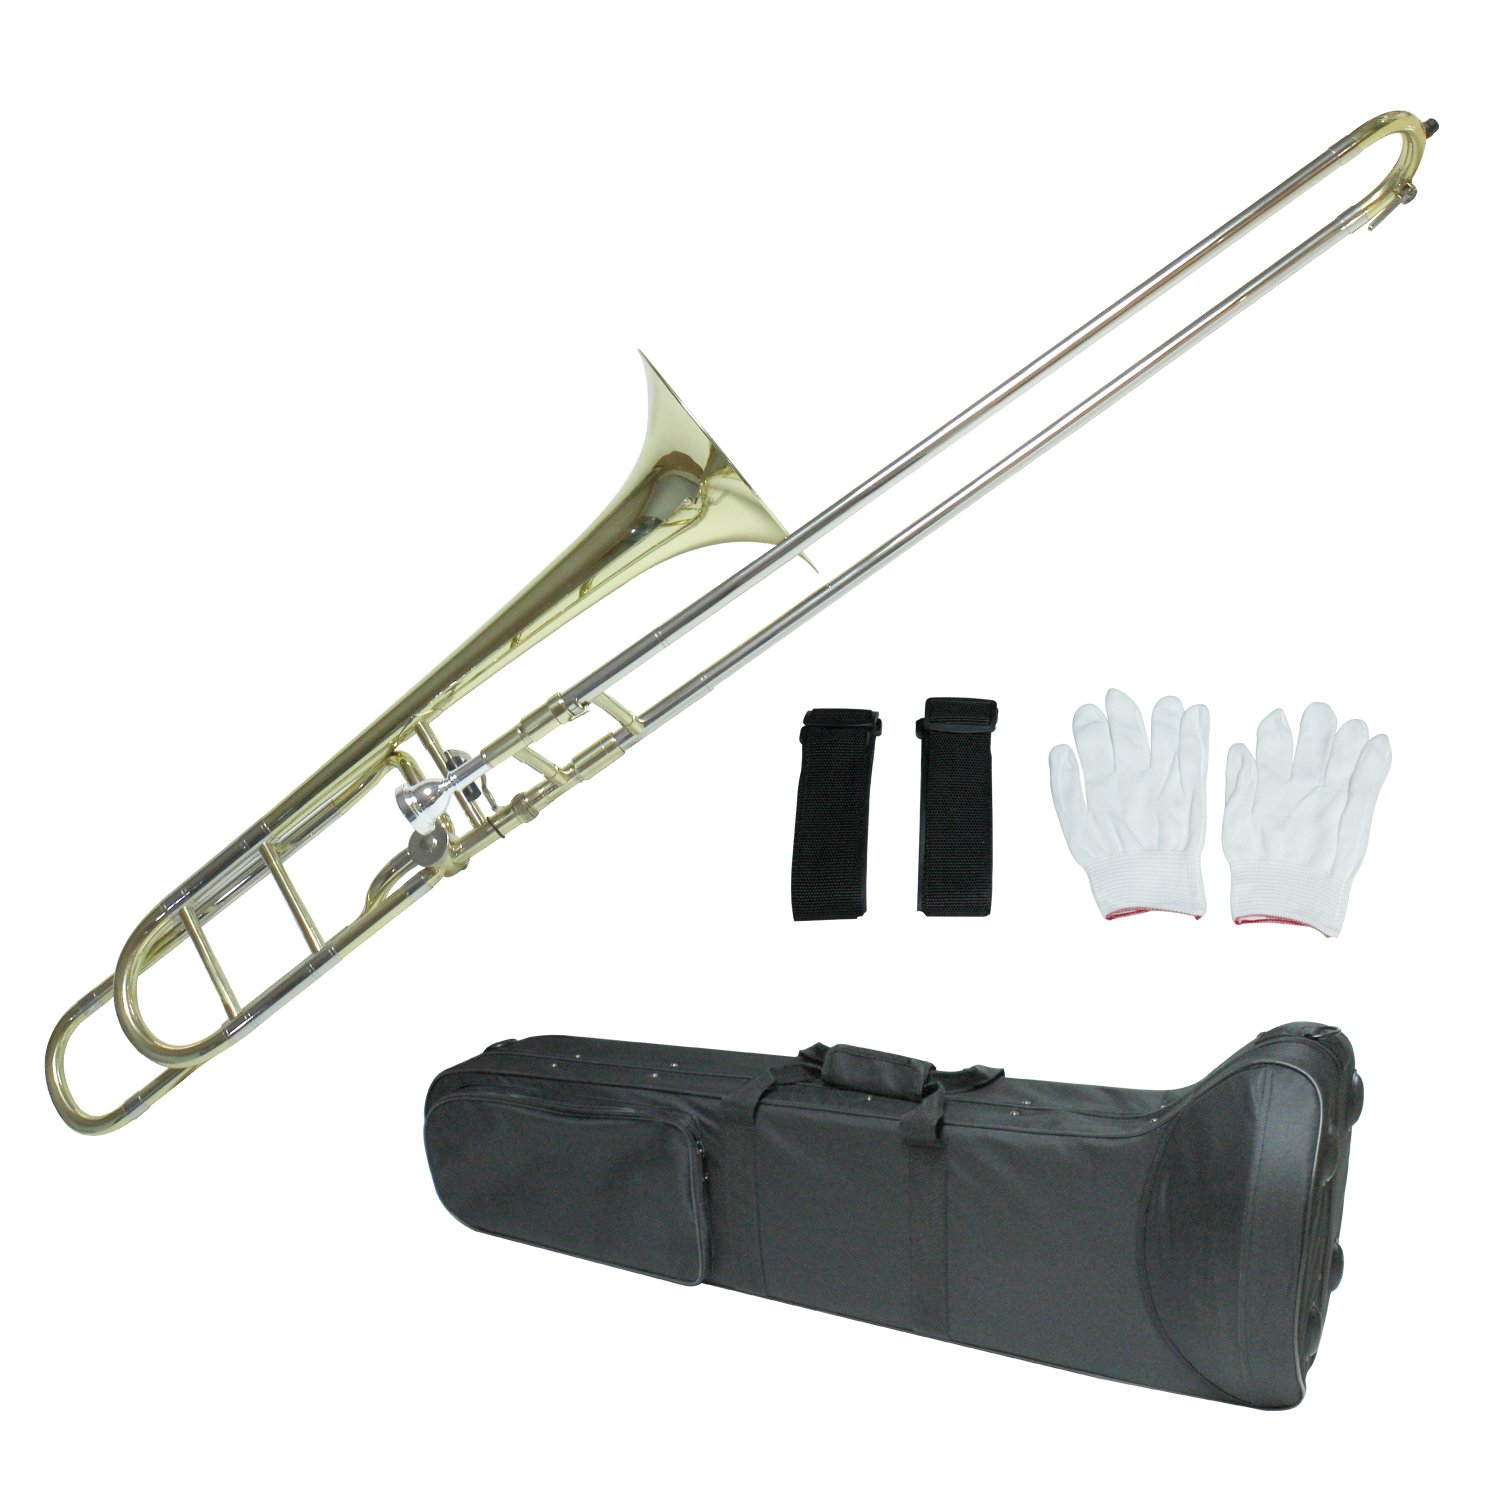 Flanger F-860 Intermediate B Flat Tenor Slide Trombone with F Trigger with Case, Mouthpiece, Gloves and Cleaning Cloth